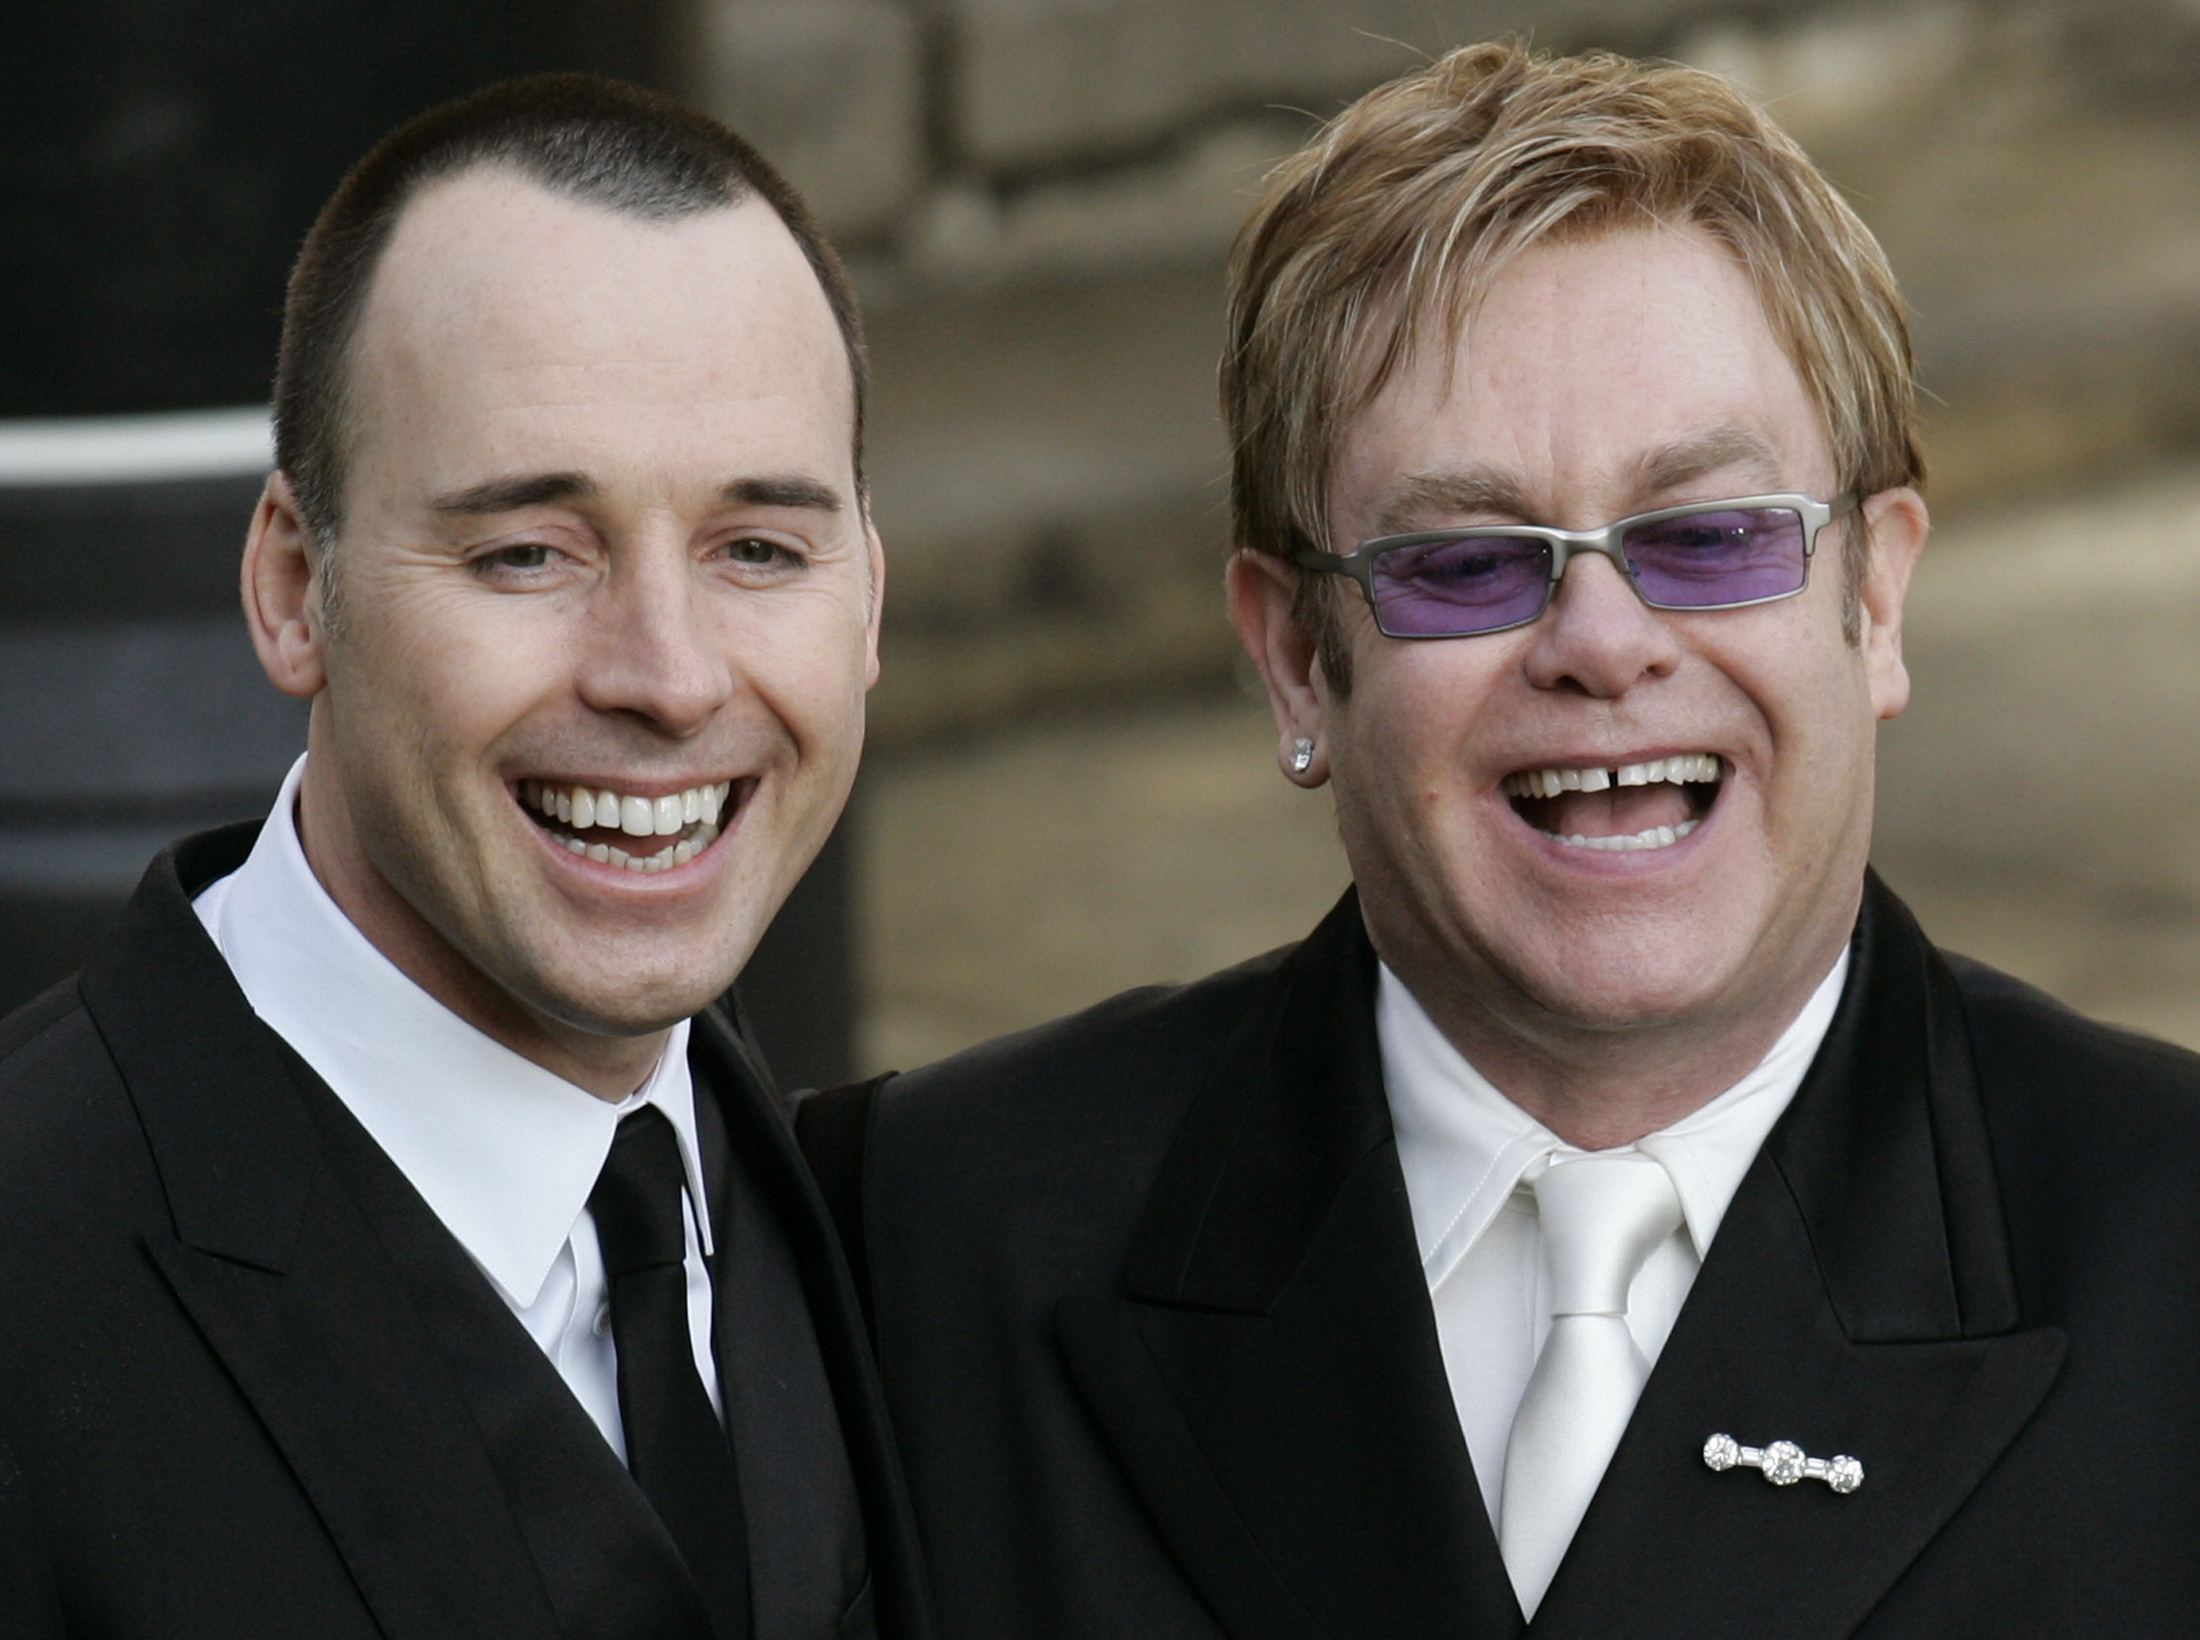 Happy day: Elton John, David Furnish marry in England